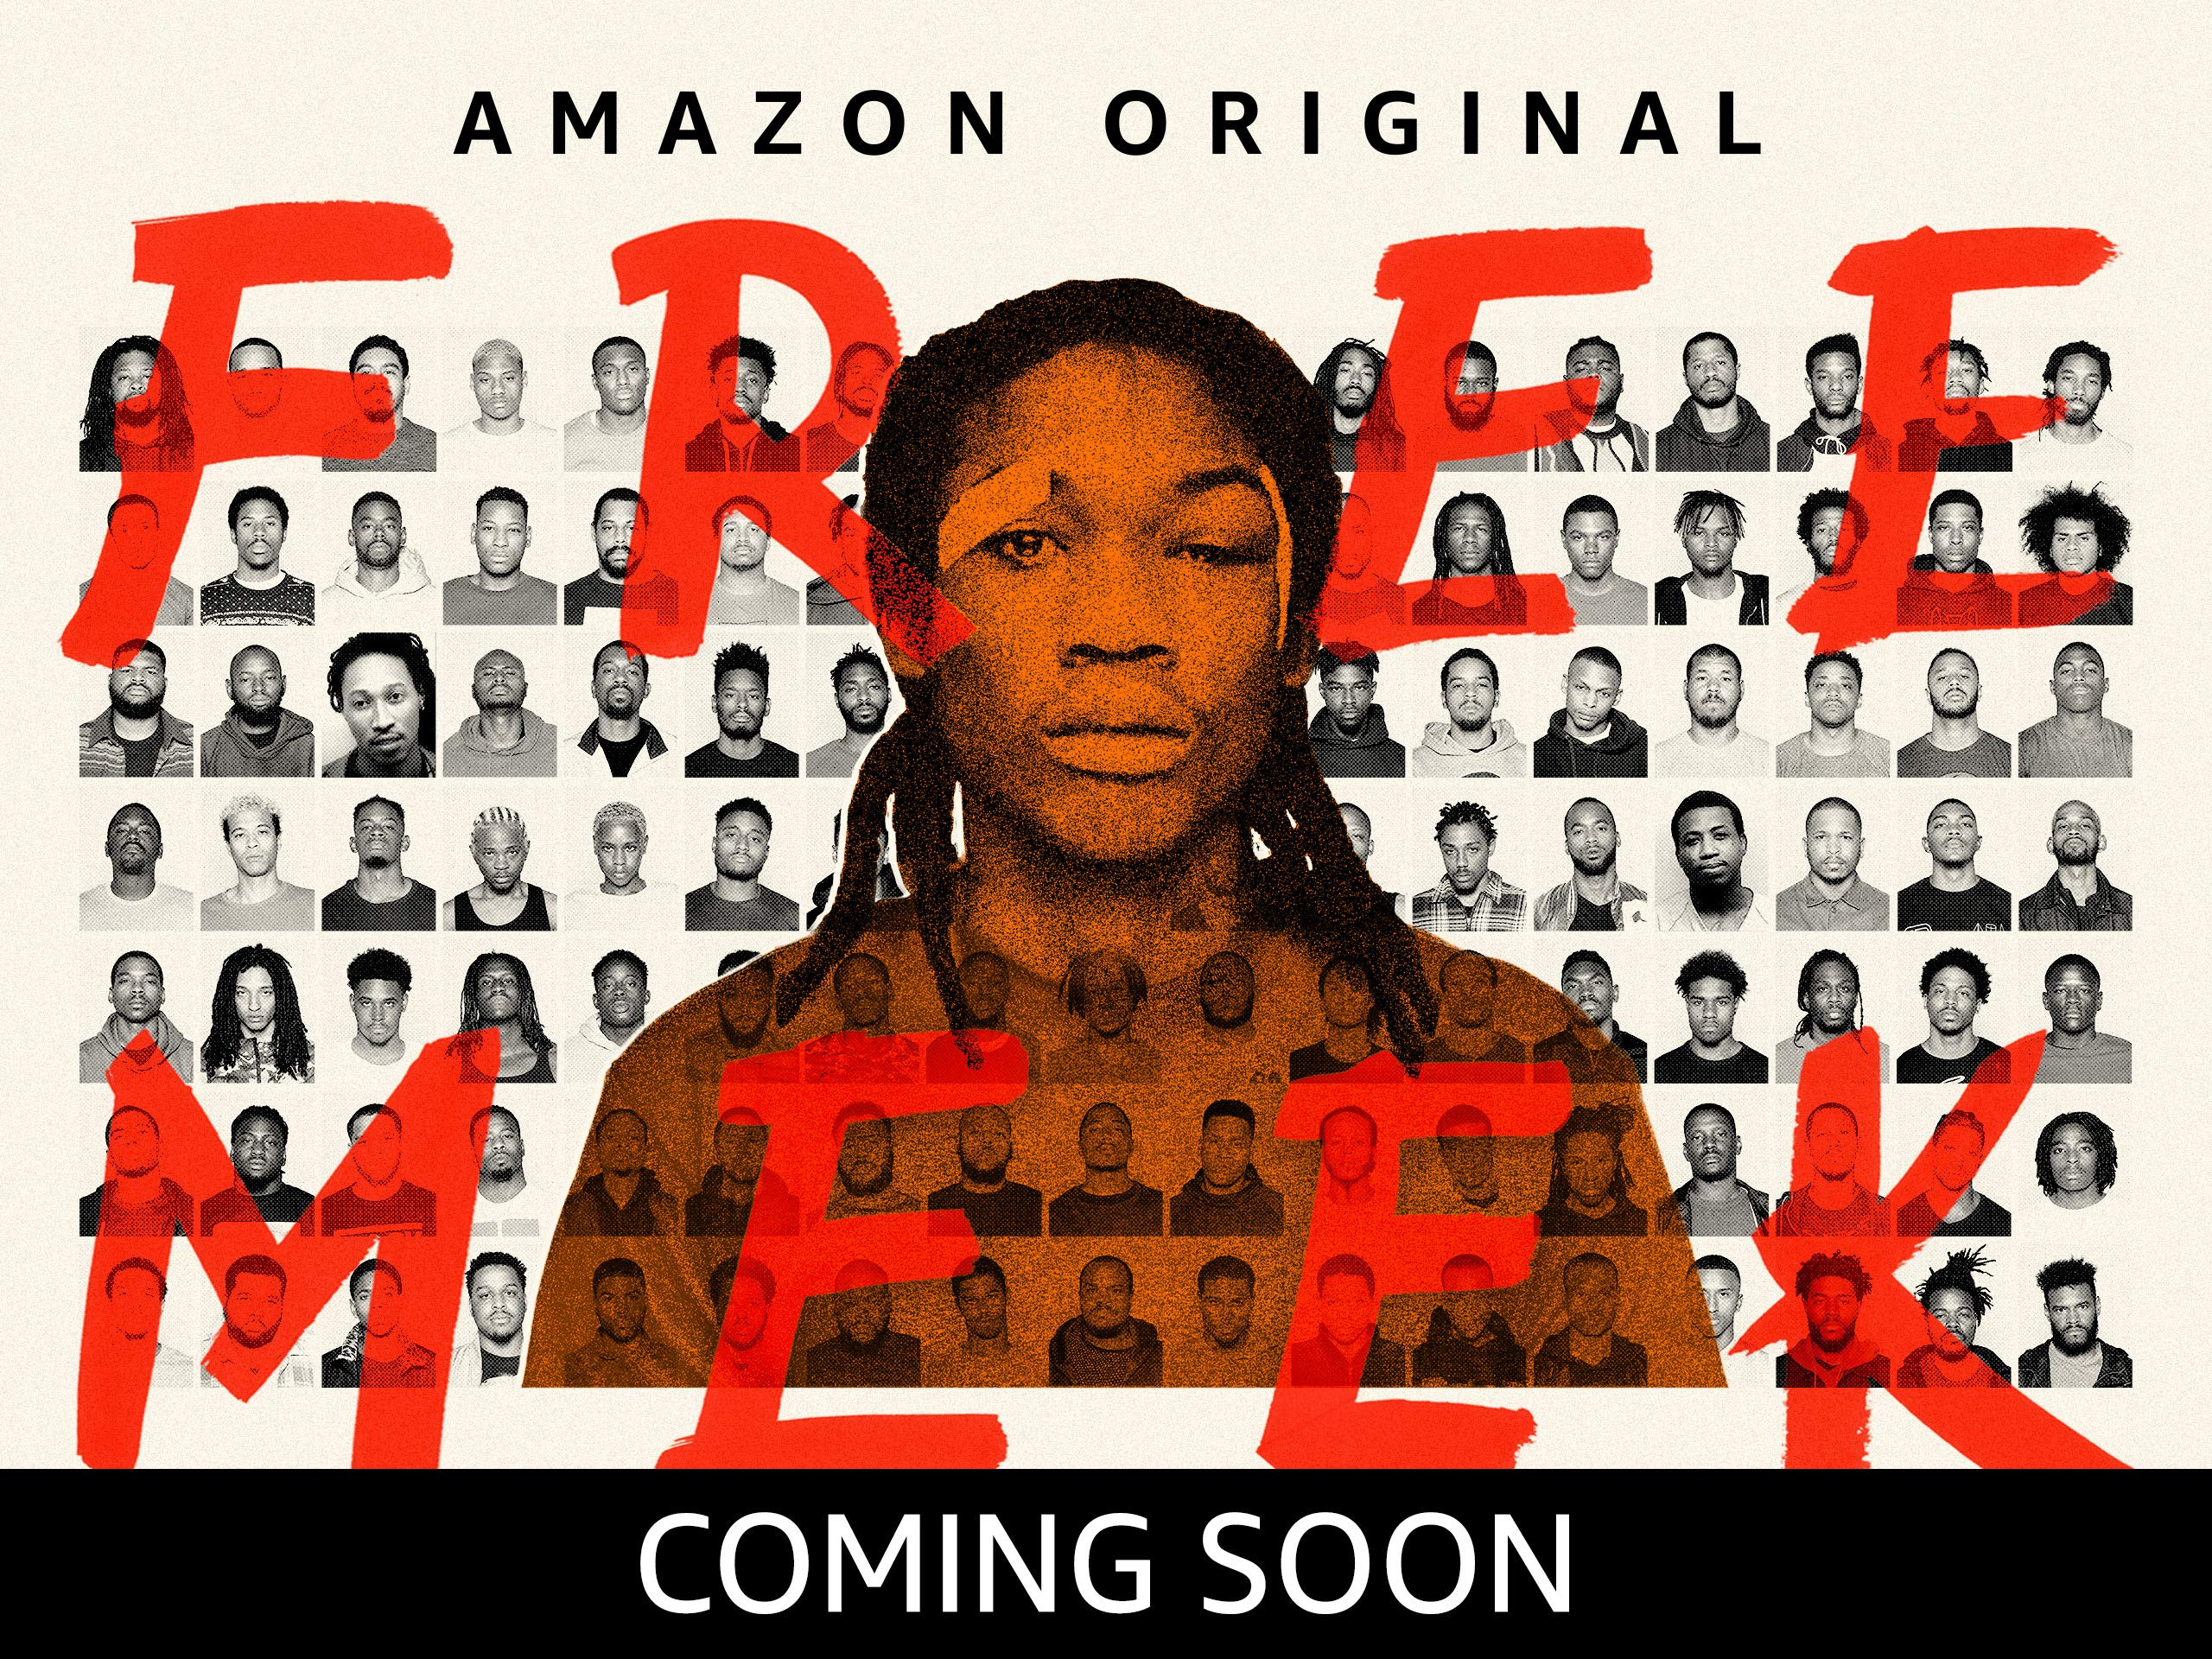 Free Meek is coming soon to Prime